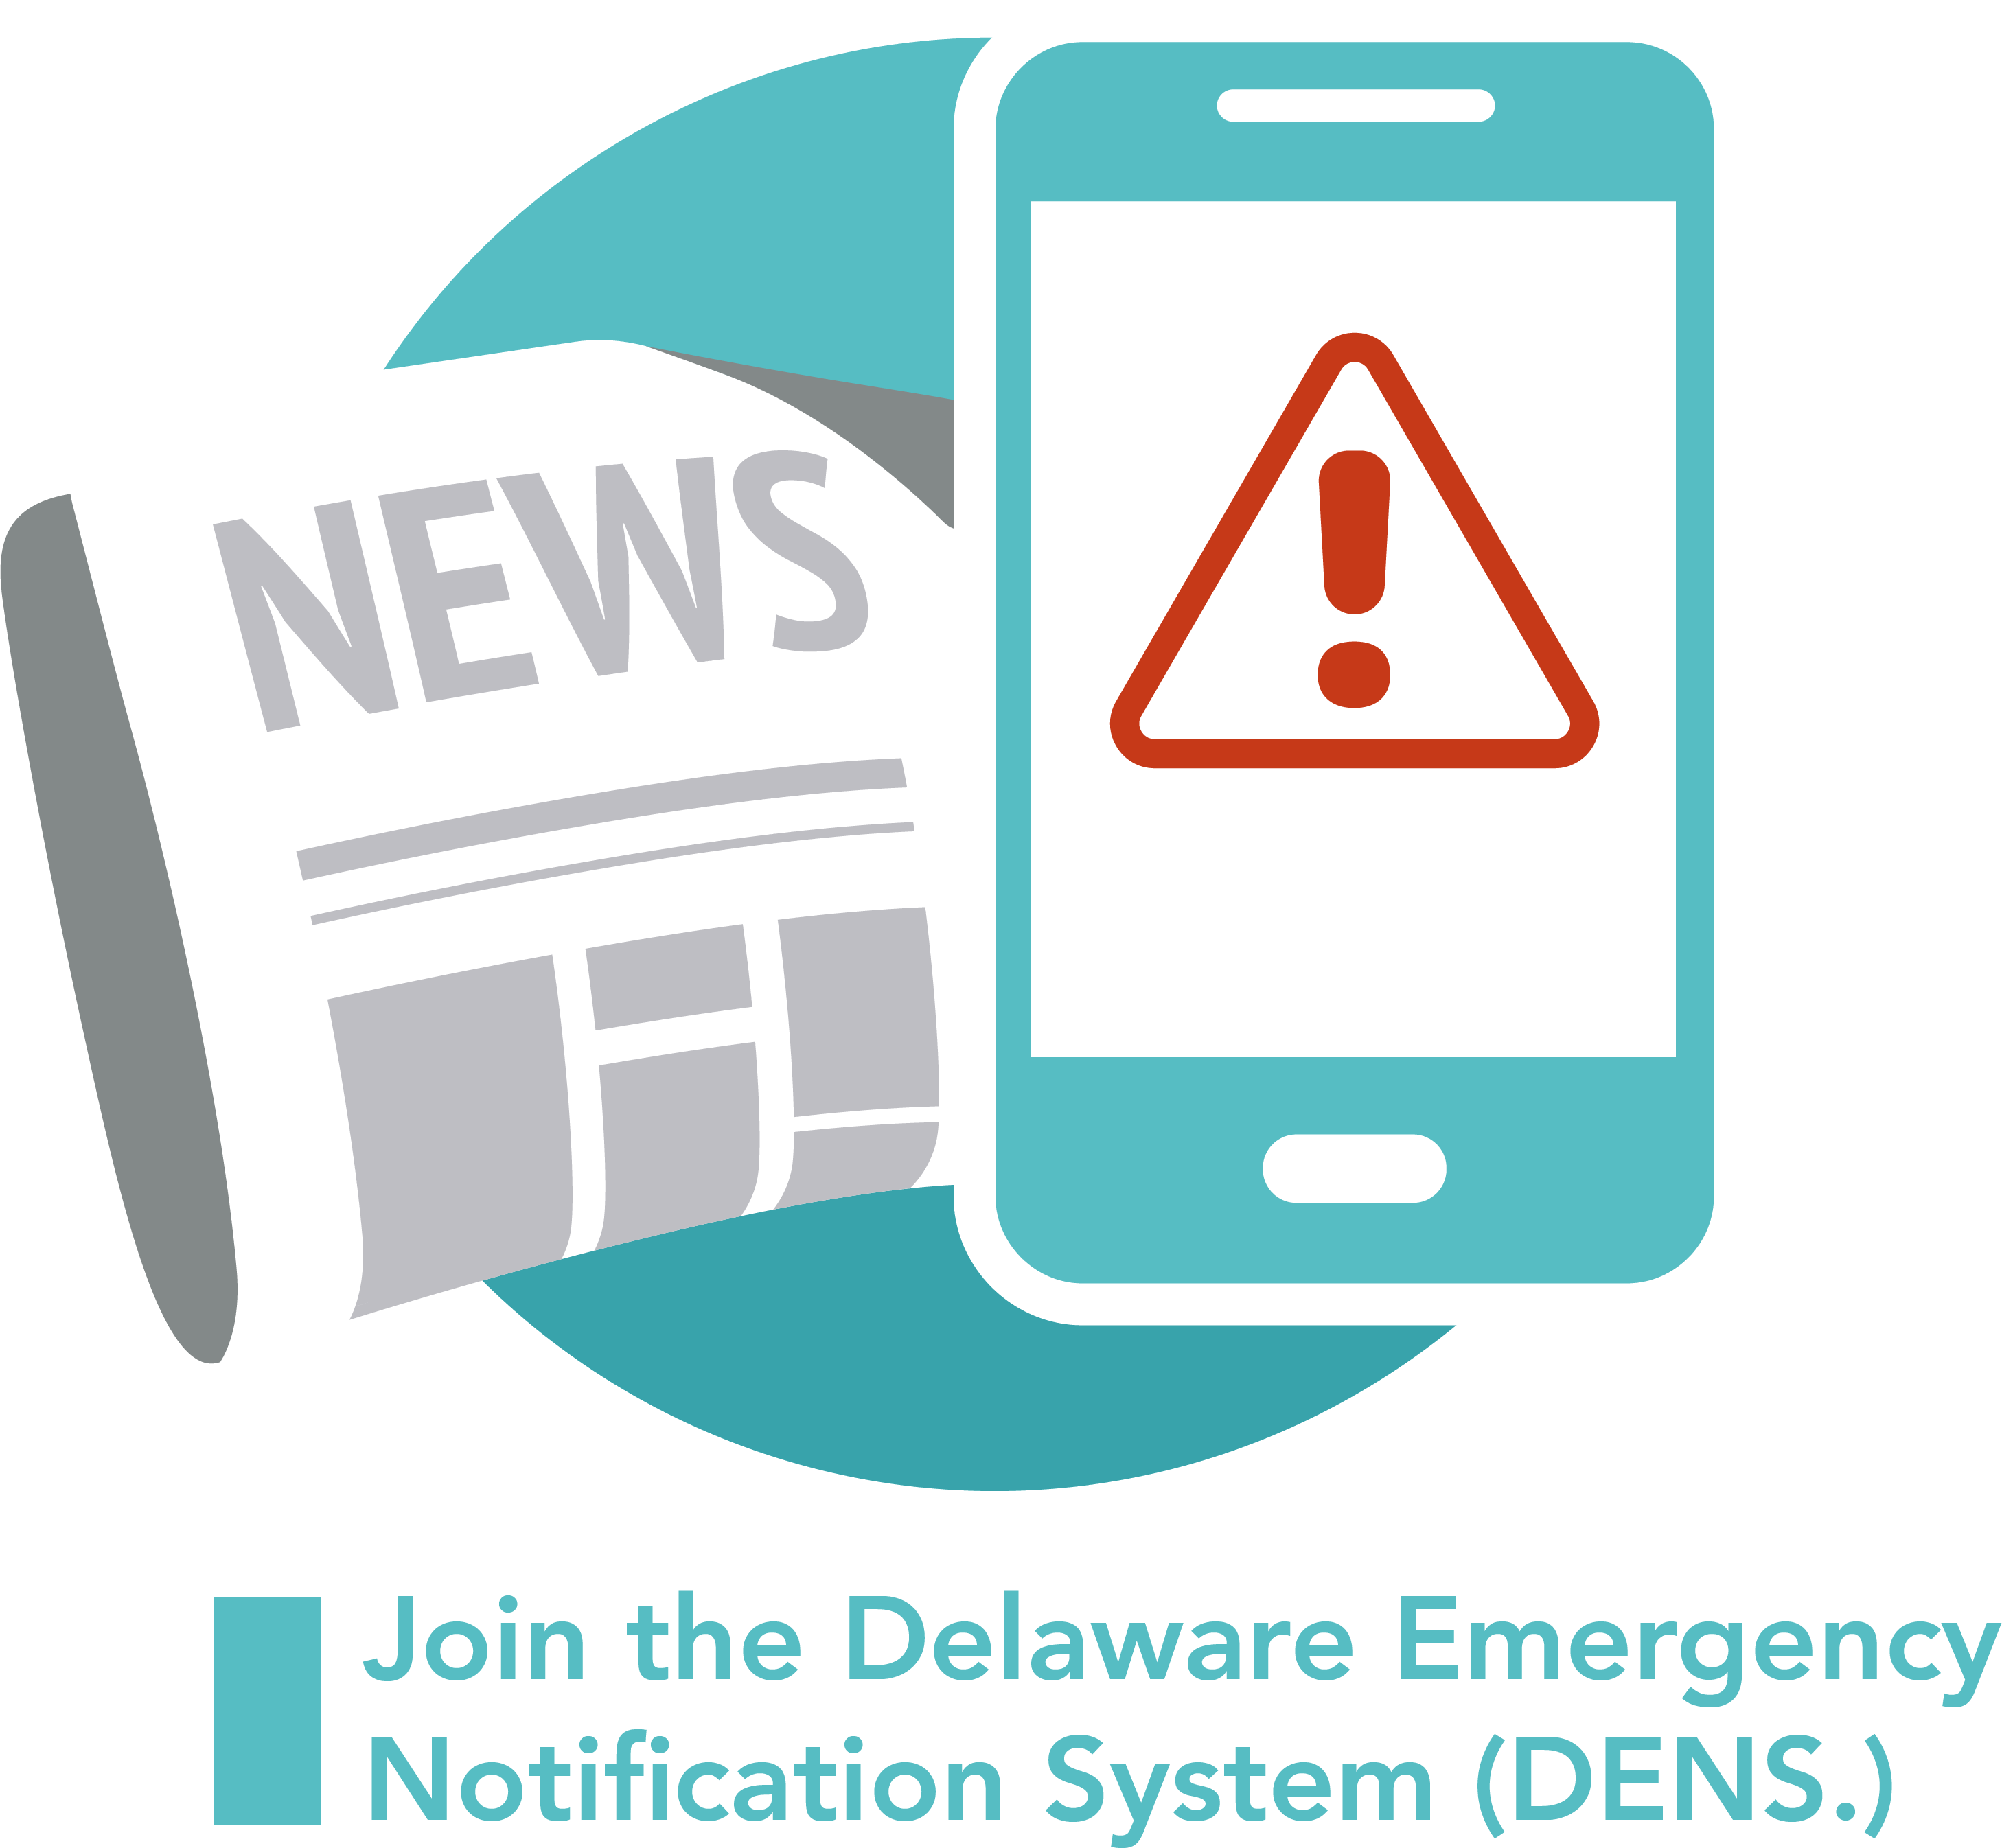 A graphic symbolizng news for the Delaware Emegency Notification System - DENS